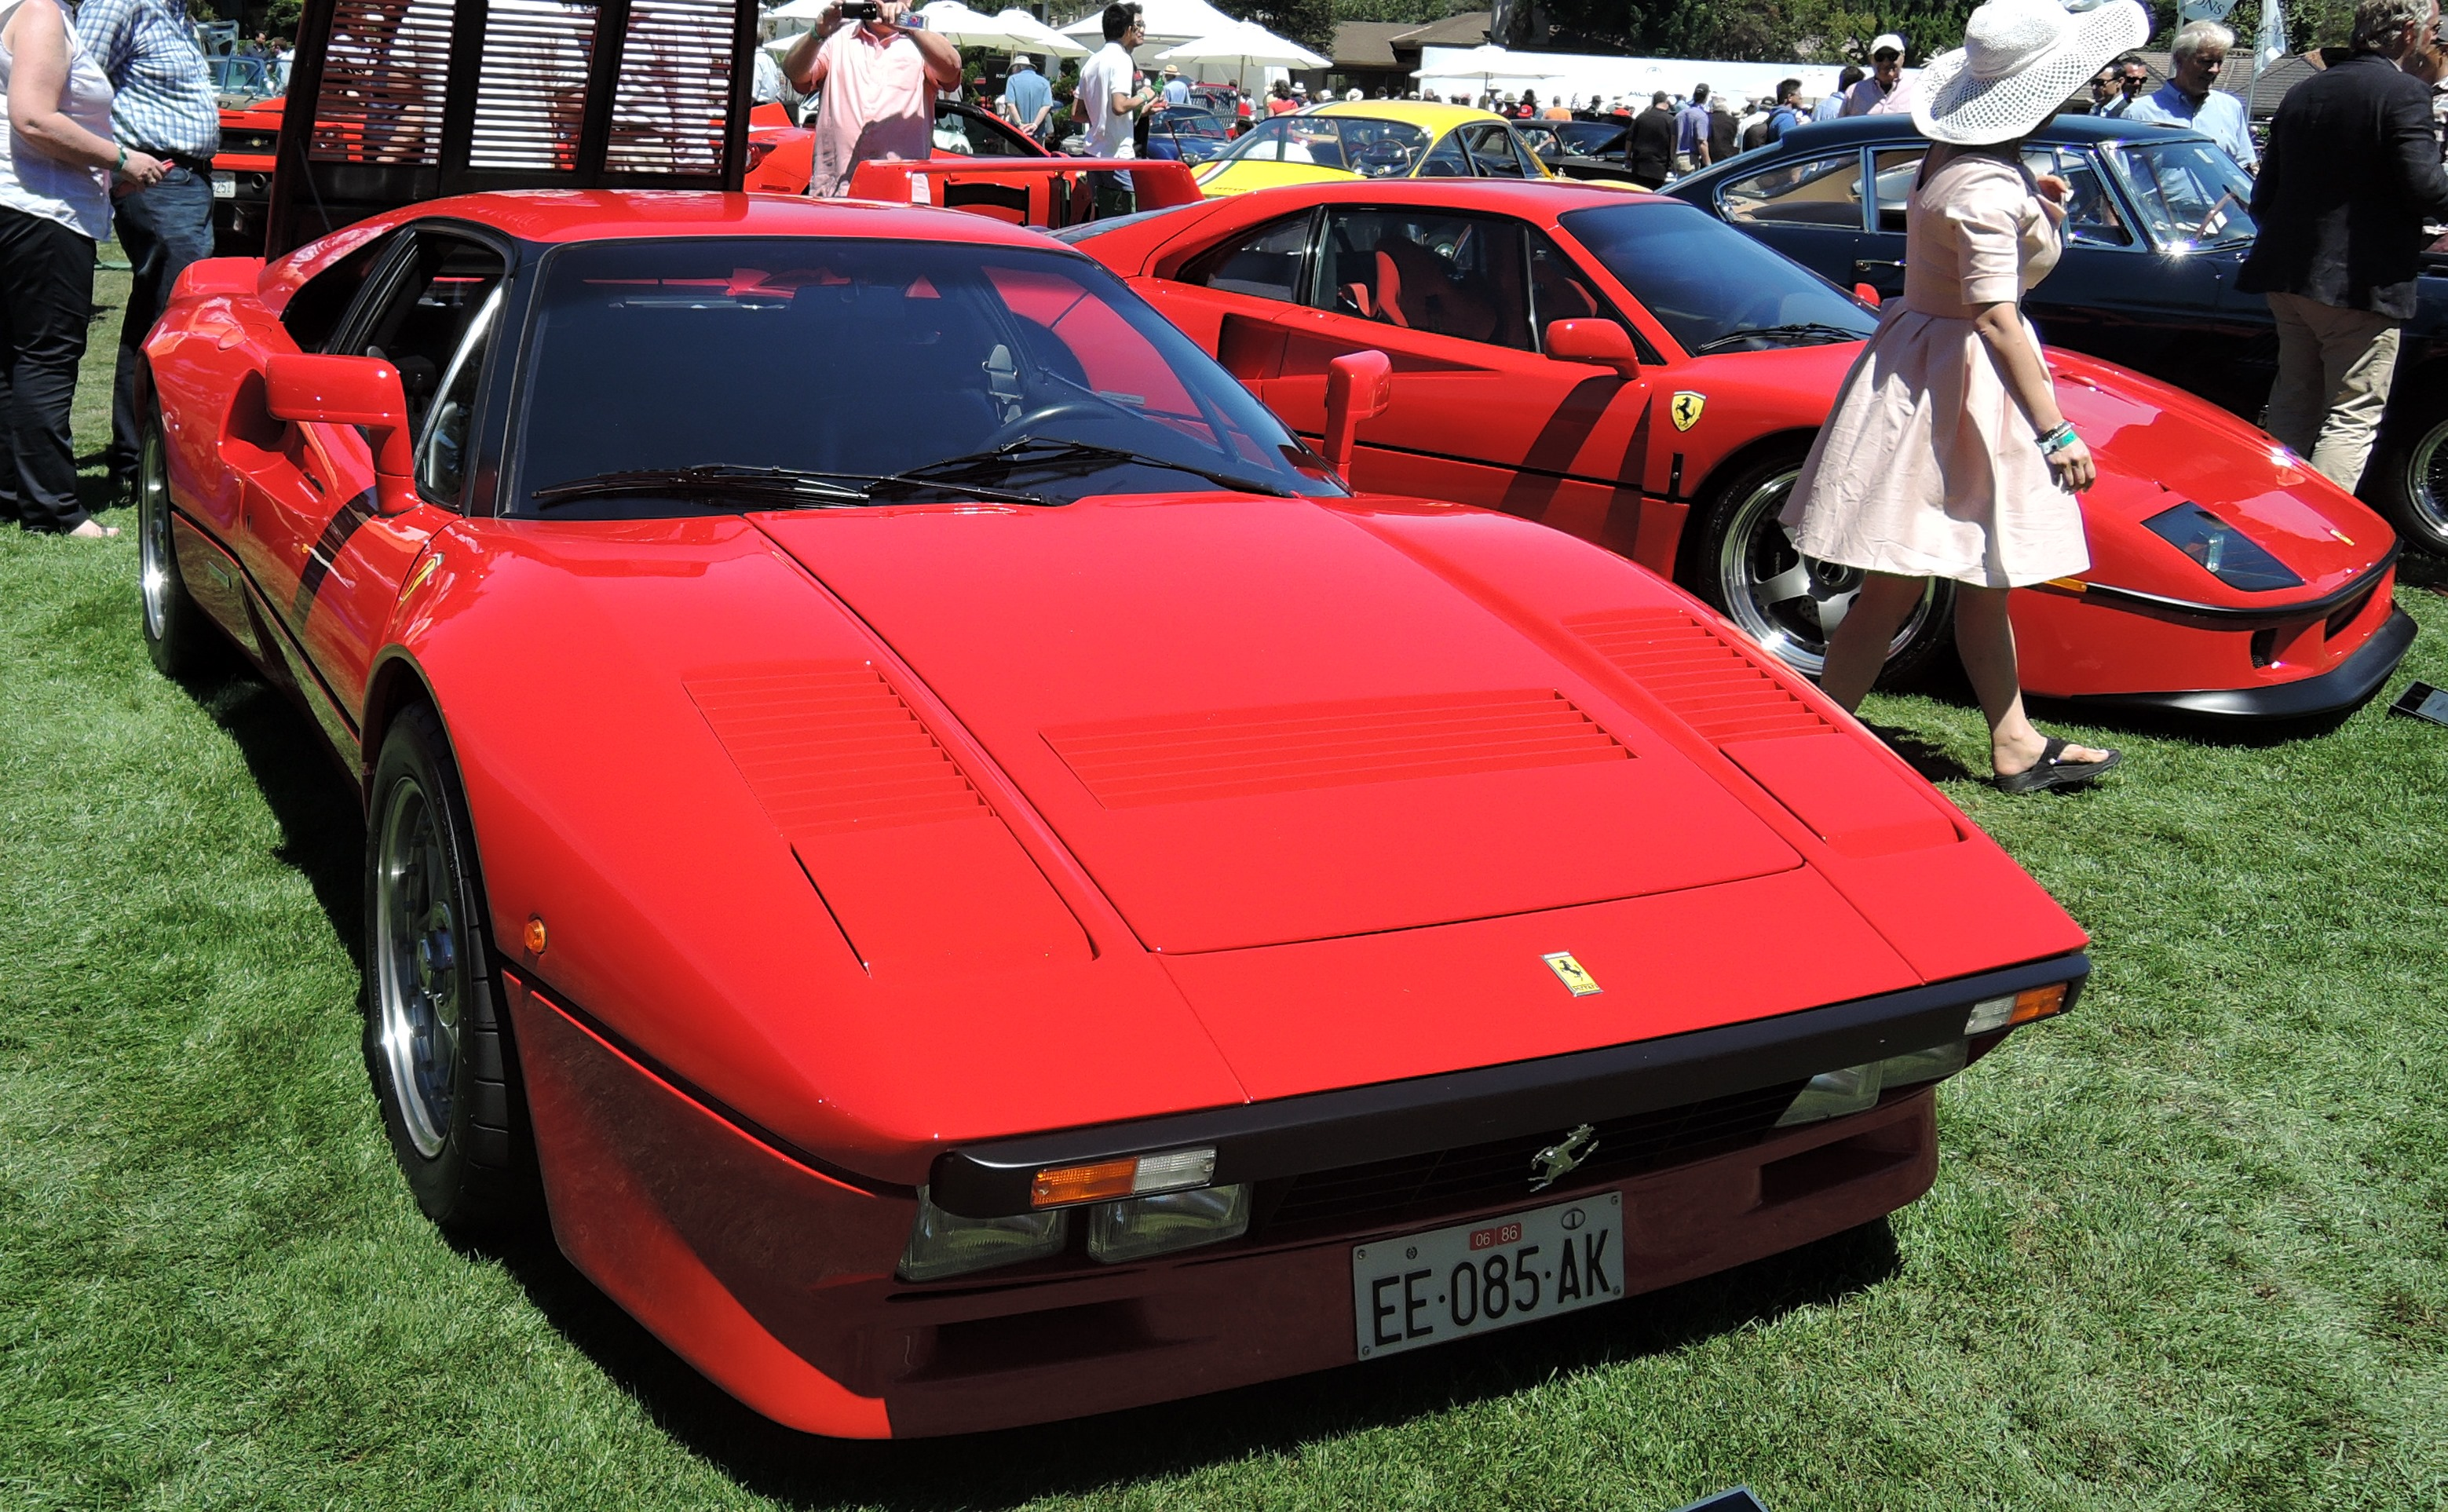 red 1985 Ferrari 288 GTO Supercar - the quail